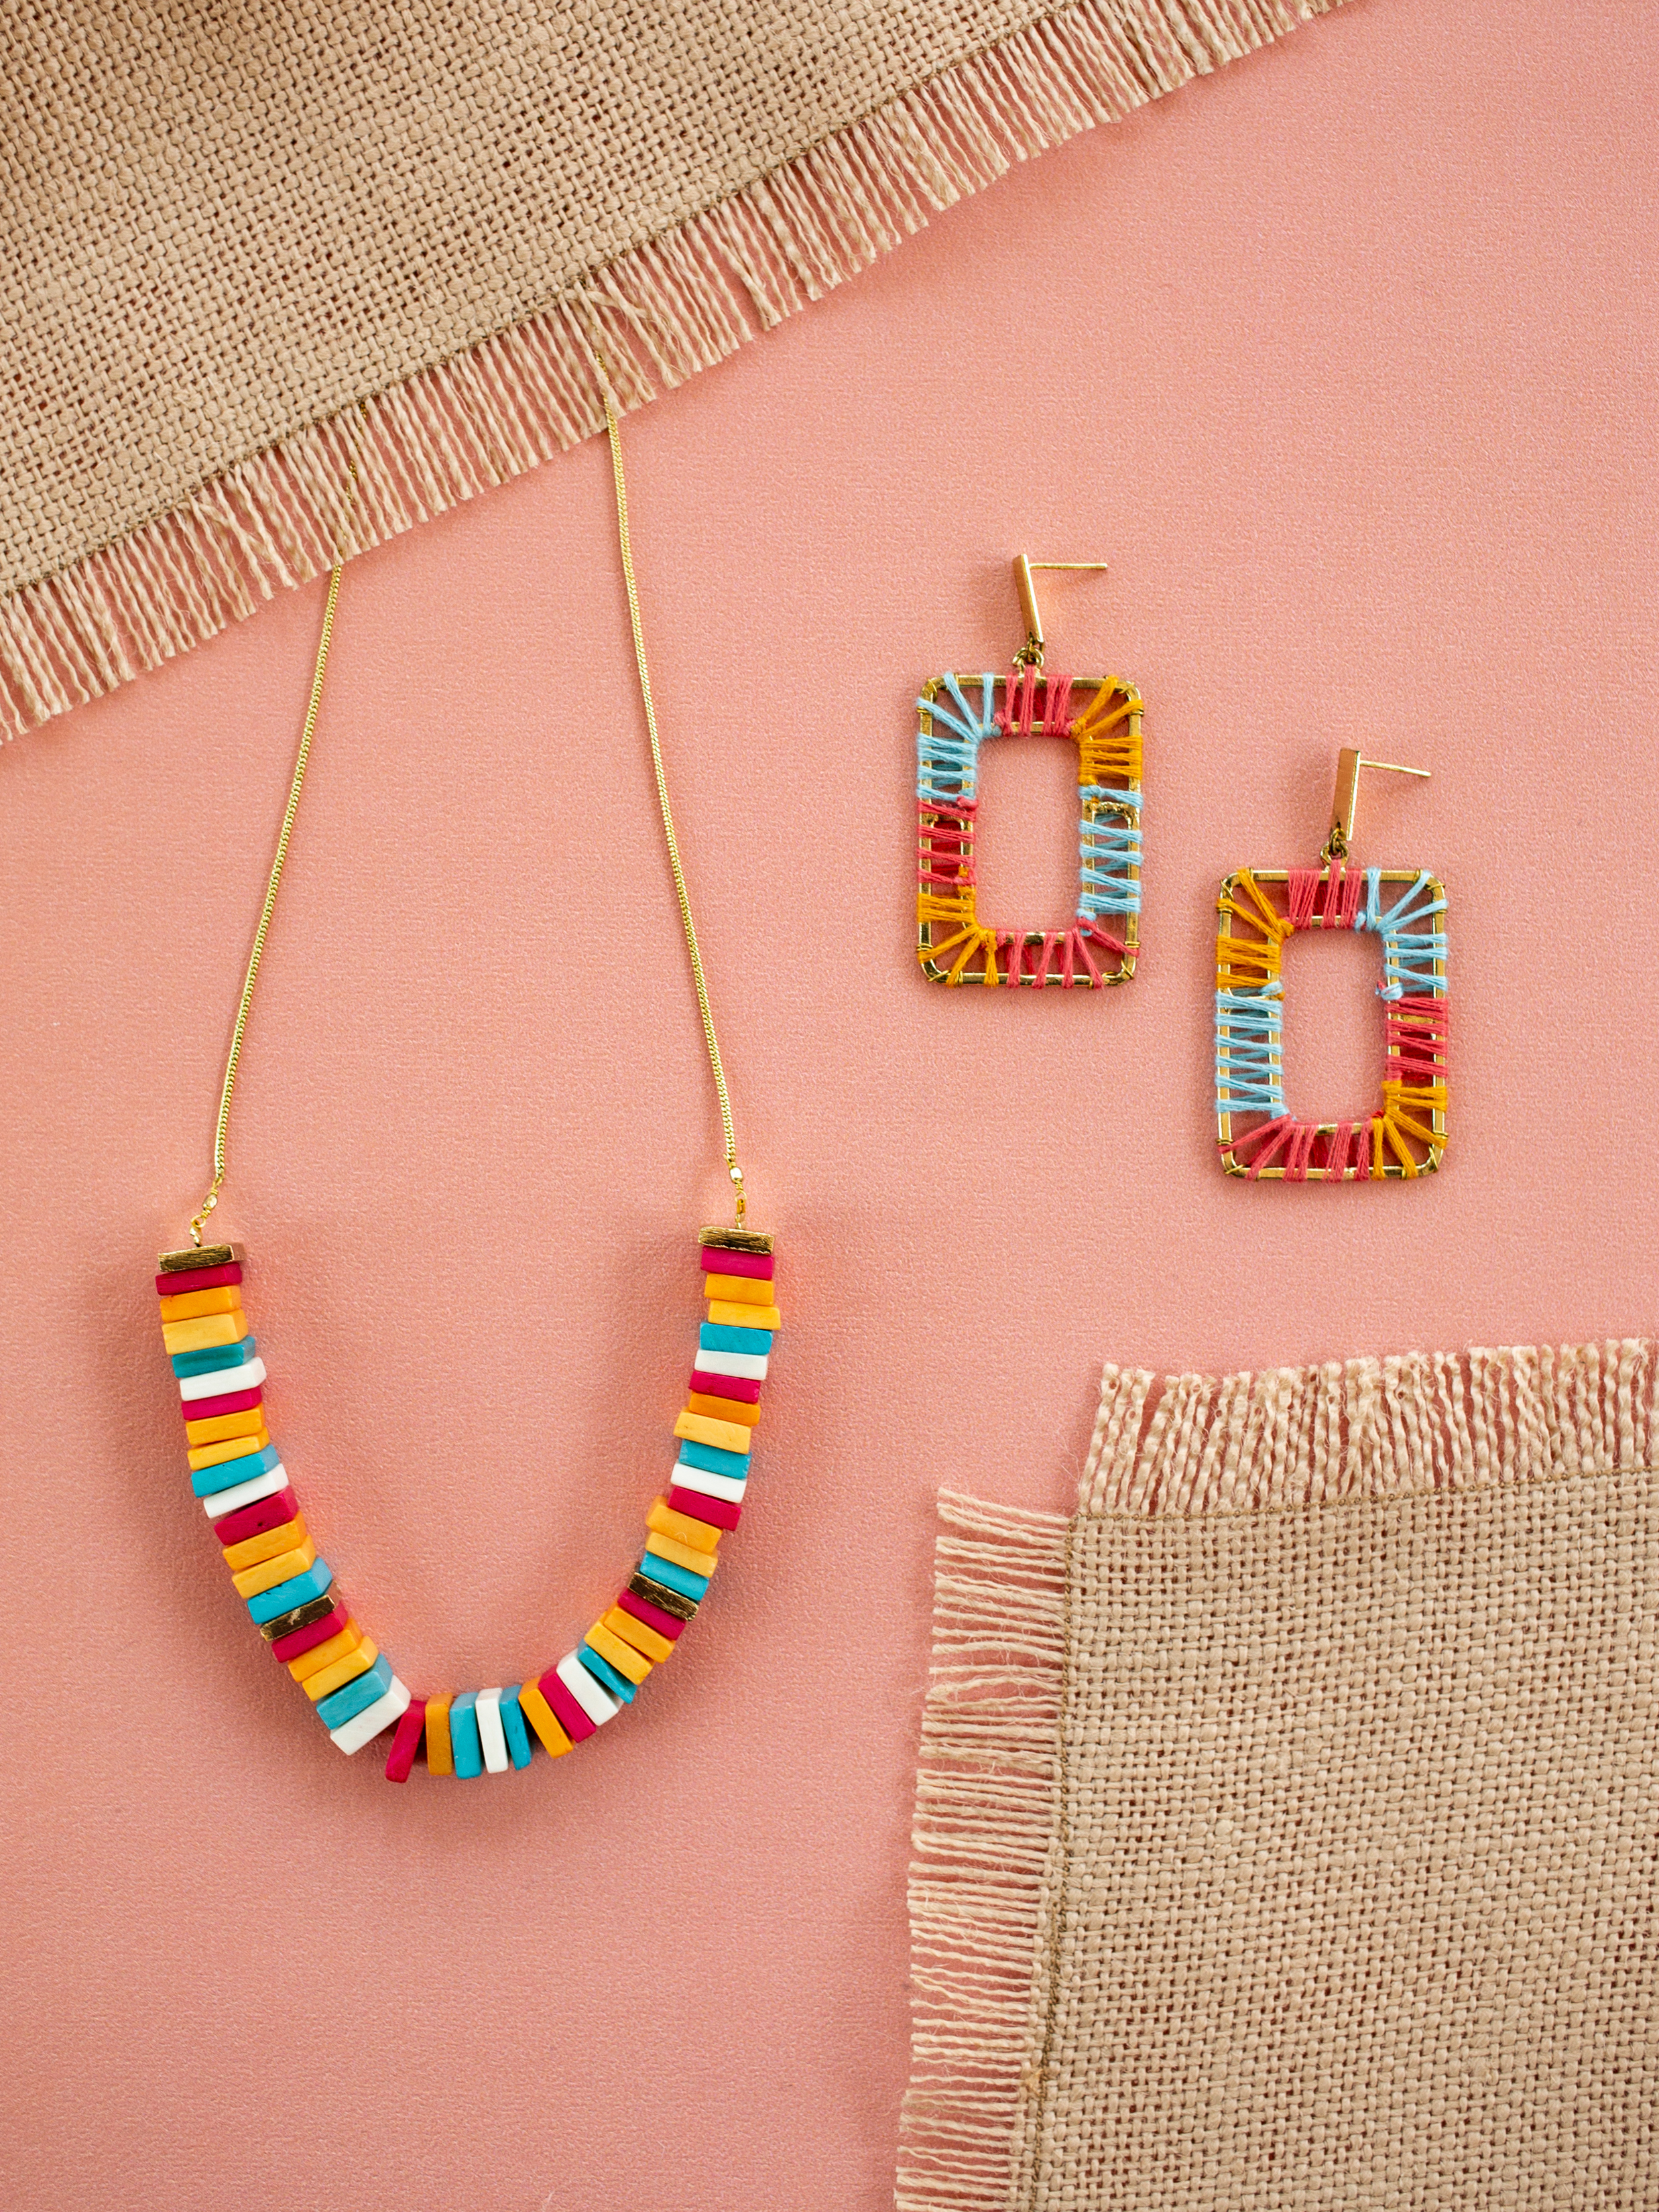 Mata Traders Earrings and Necklace